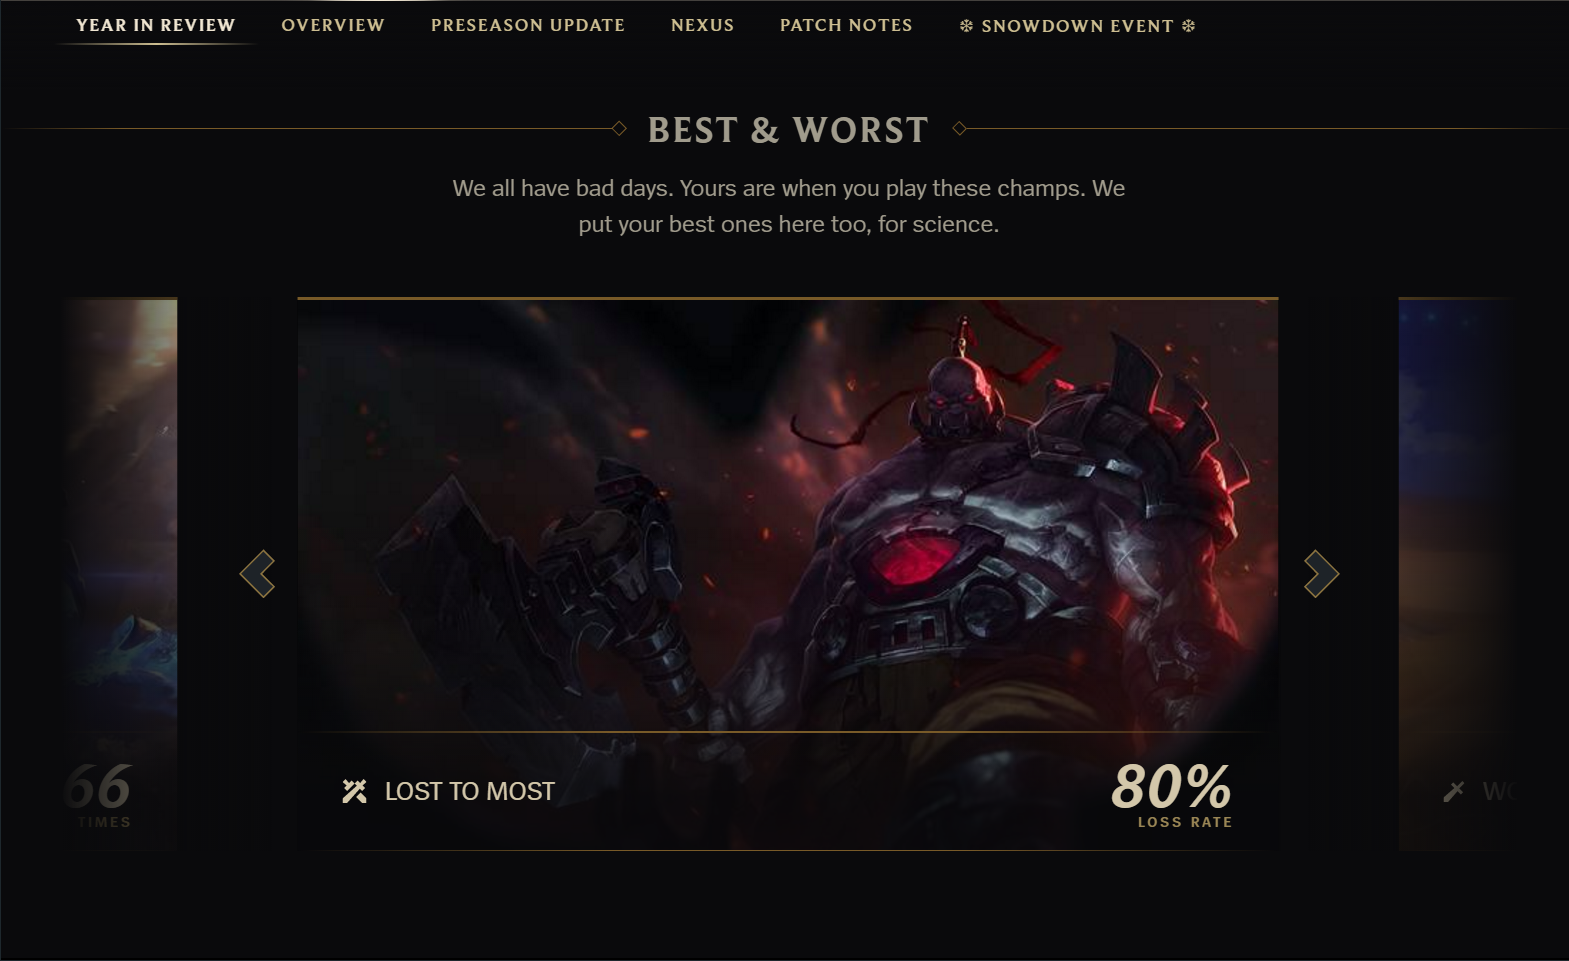 Every Online Game Should have a Year in Review Like League of